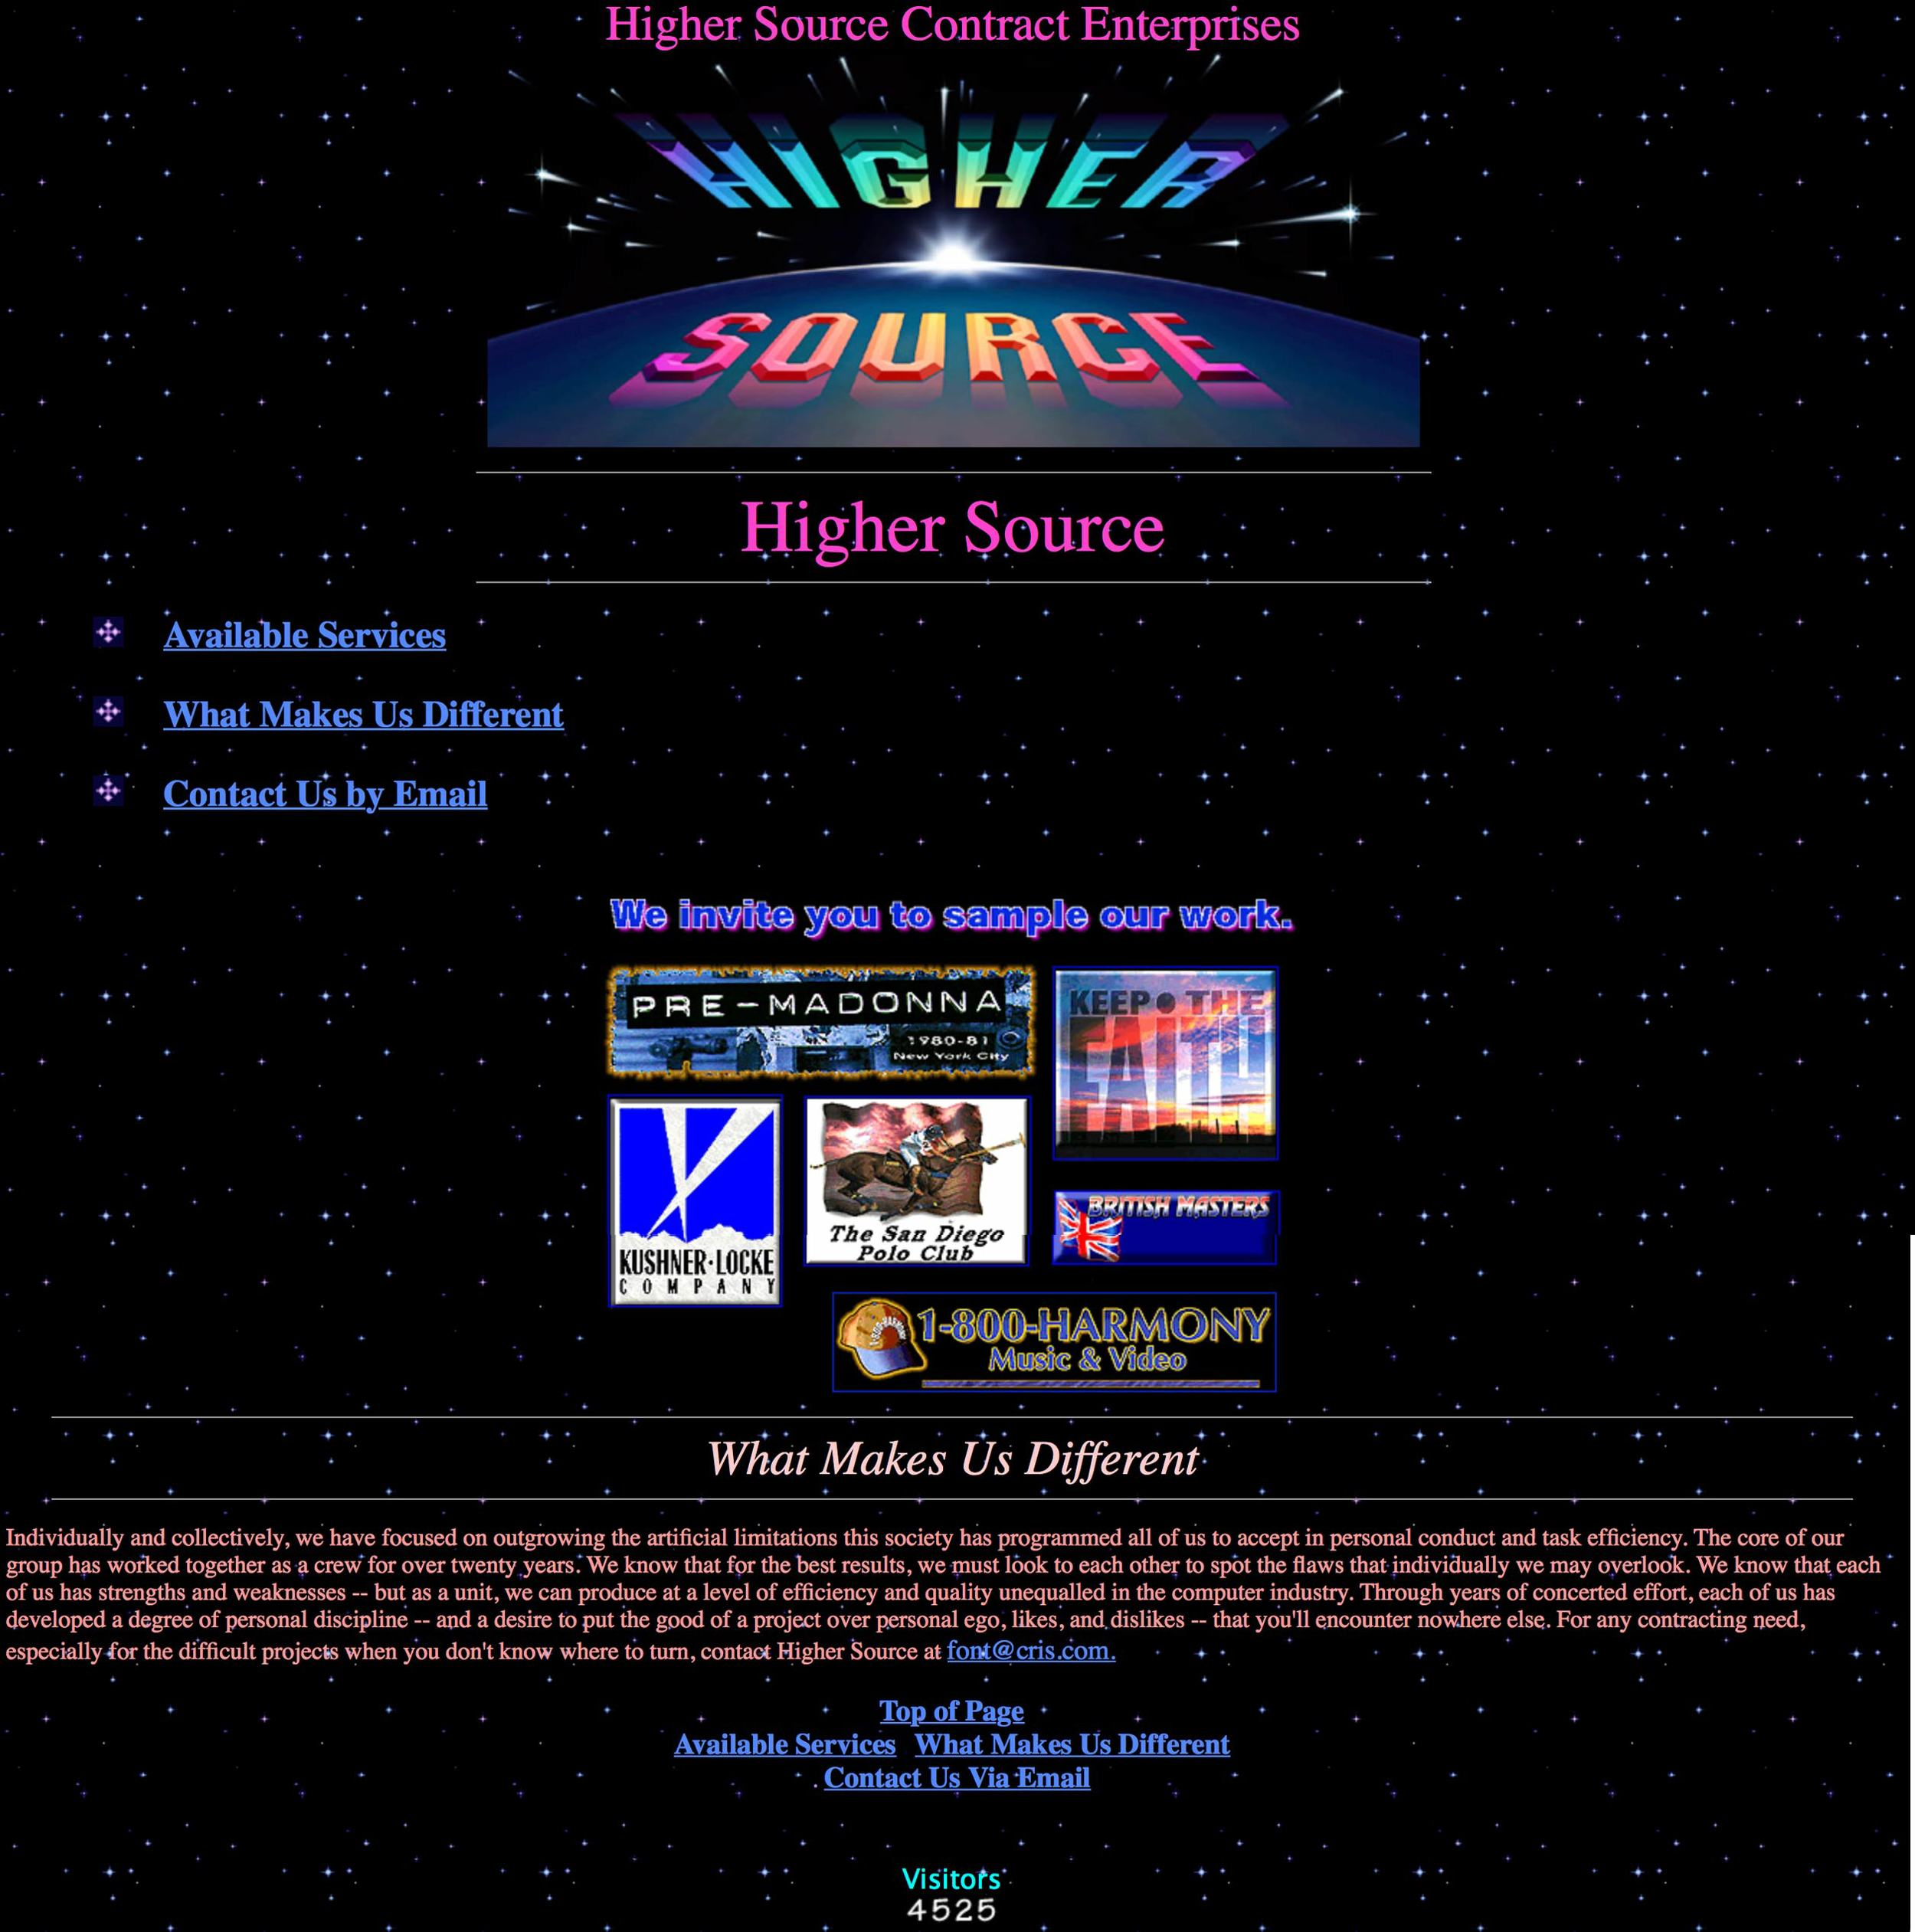 Screenshot ofHigher Source's Website as of April 1997